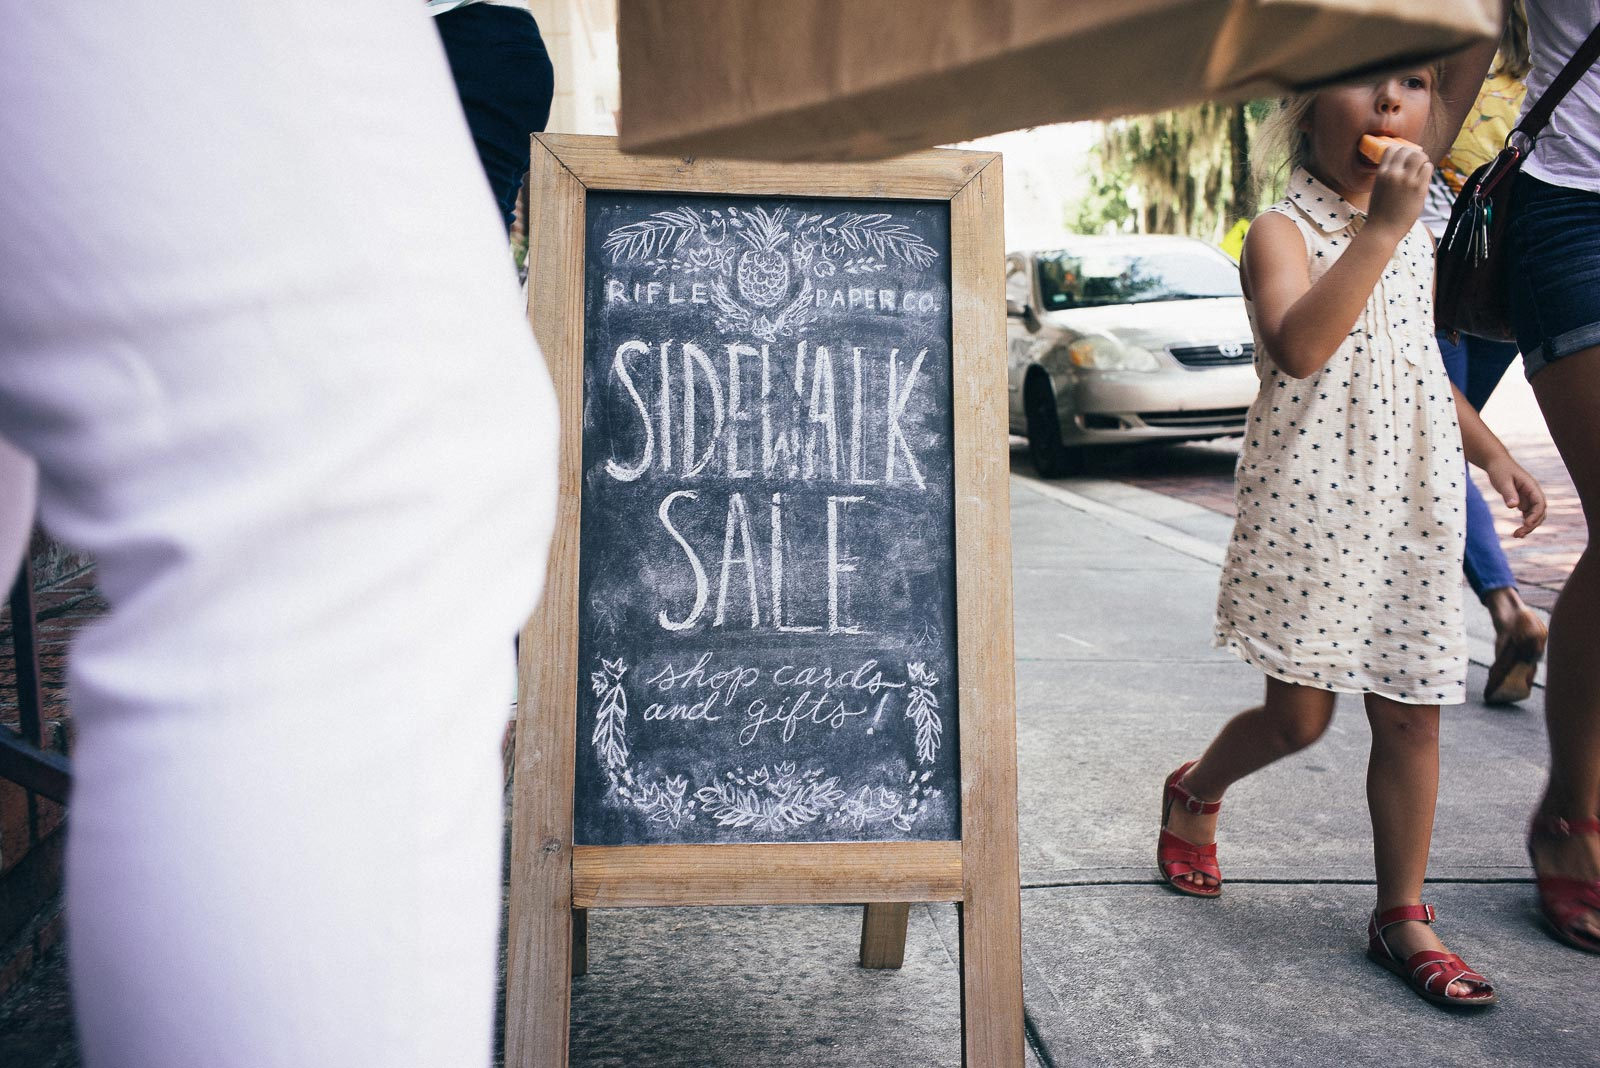 Mama's Sauce and Rifle Paper Co. Sidewalk Sale